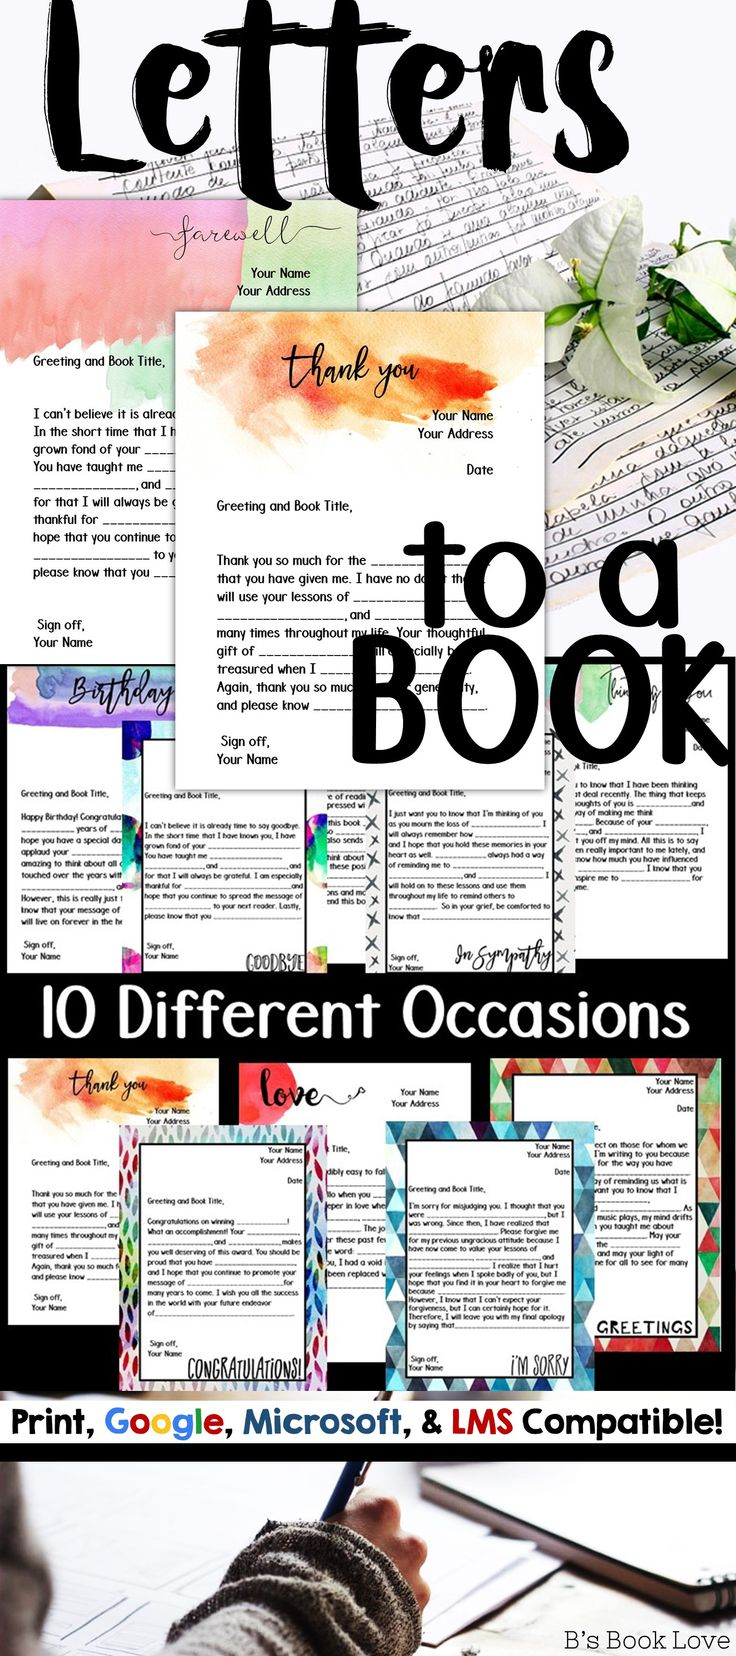 Letters to a book: a meaningful way to reflect on themes after finishing a book or story.